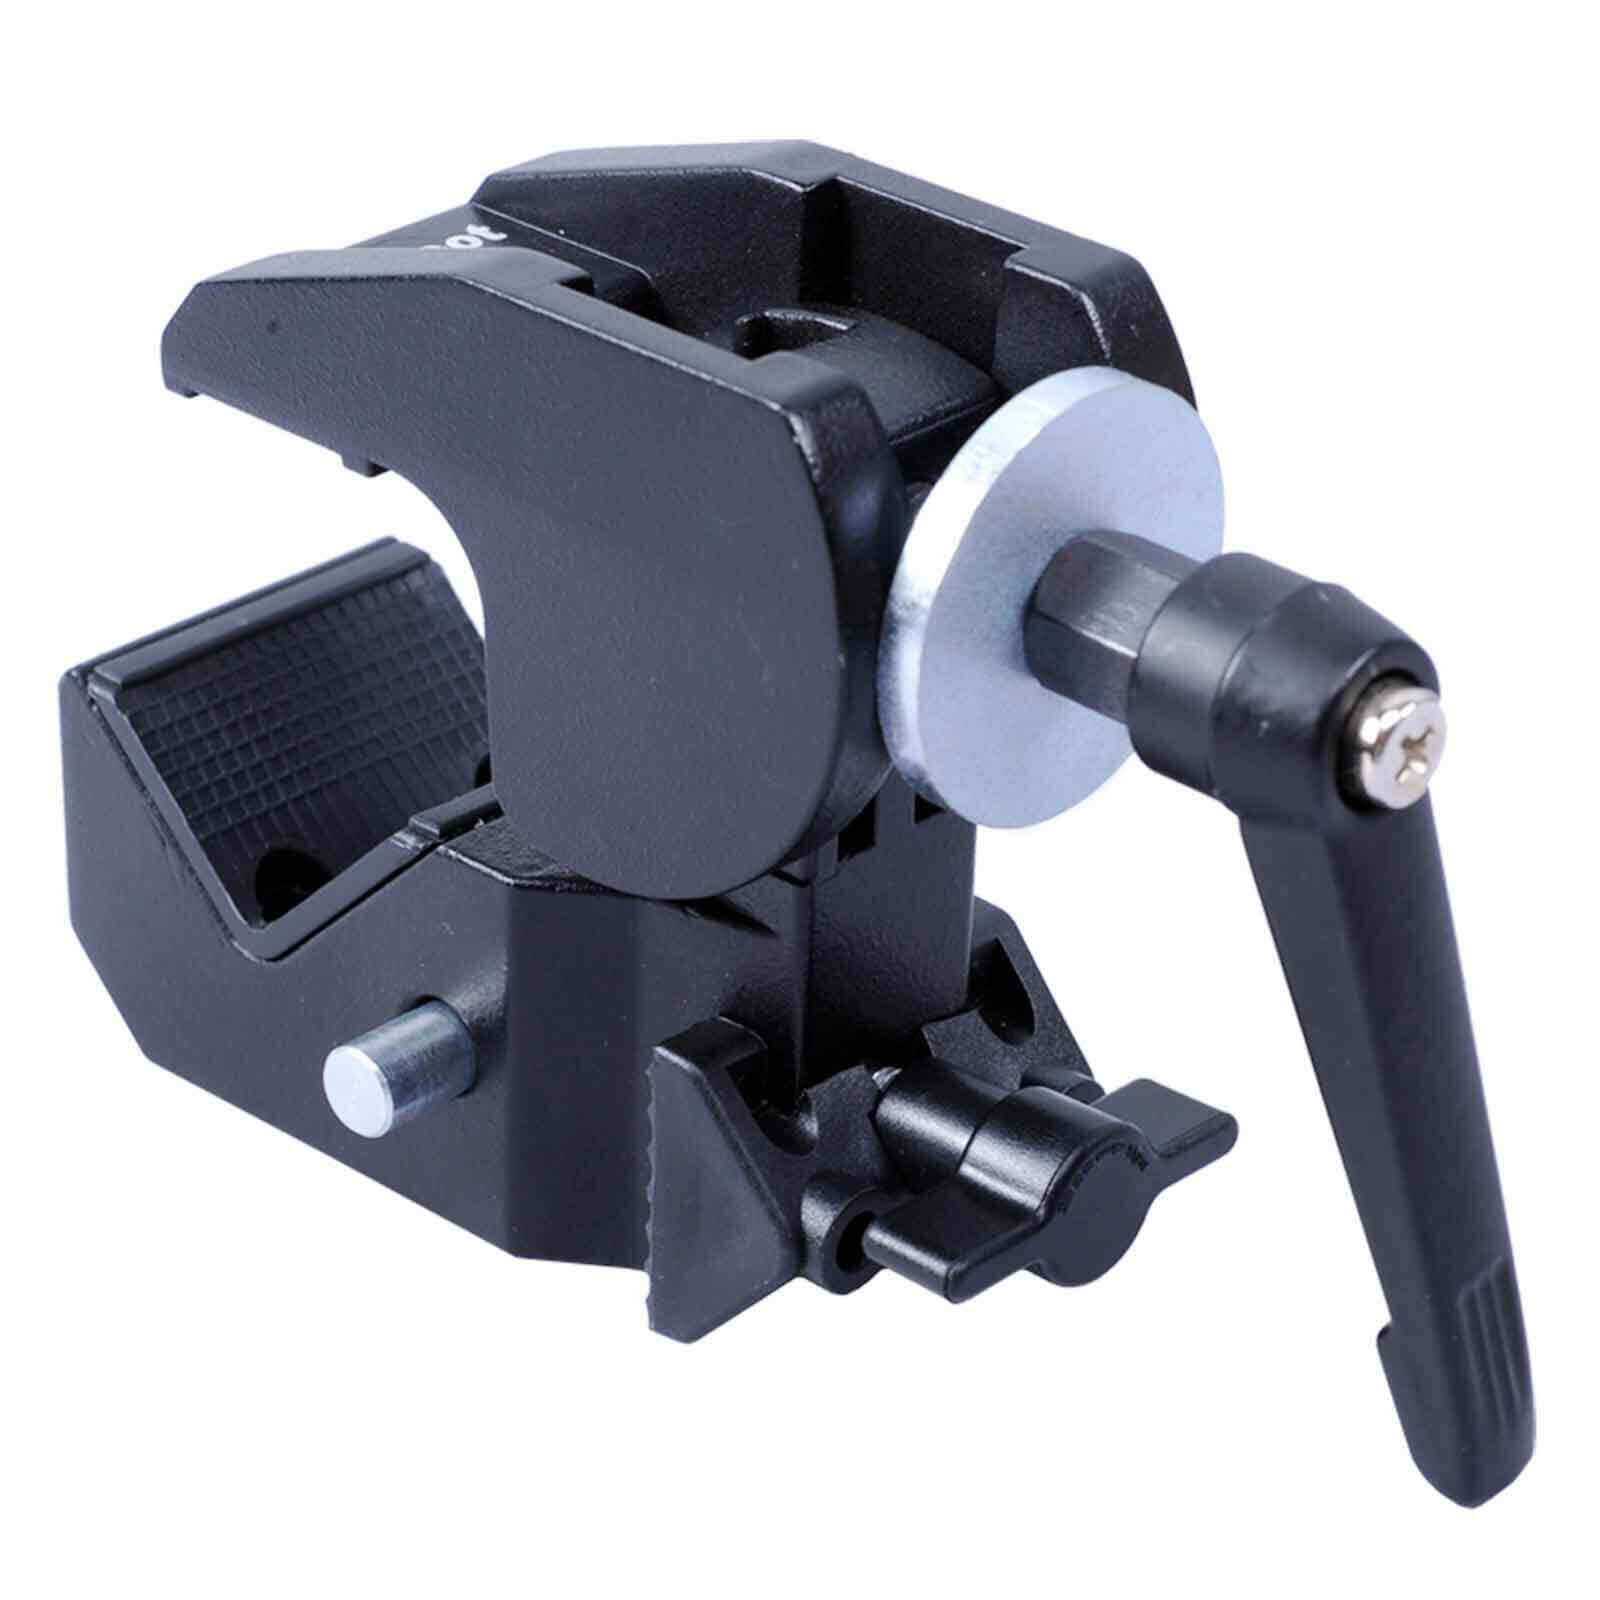 Super Strong Clamp Clip Pliers Camera Holder Flash Bracket Support Max Load 10kg